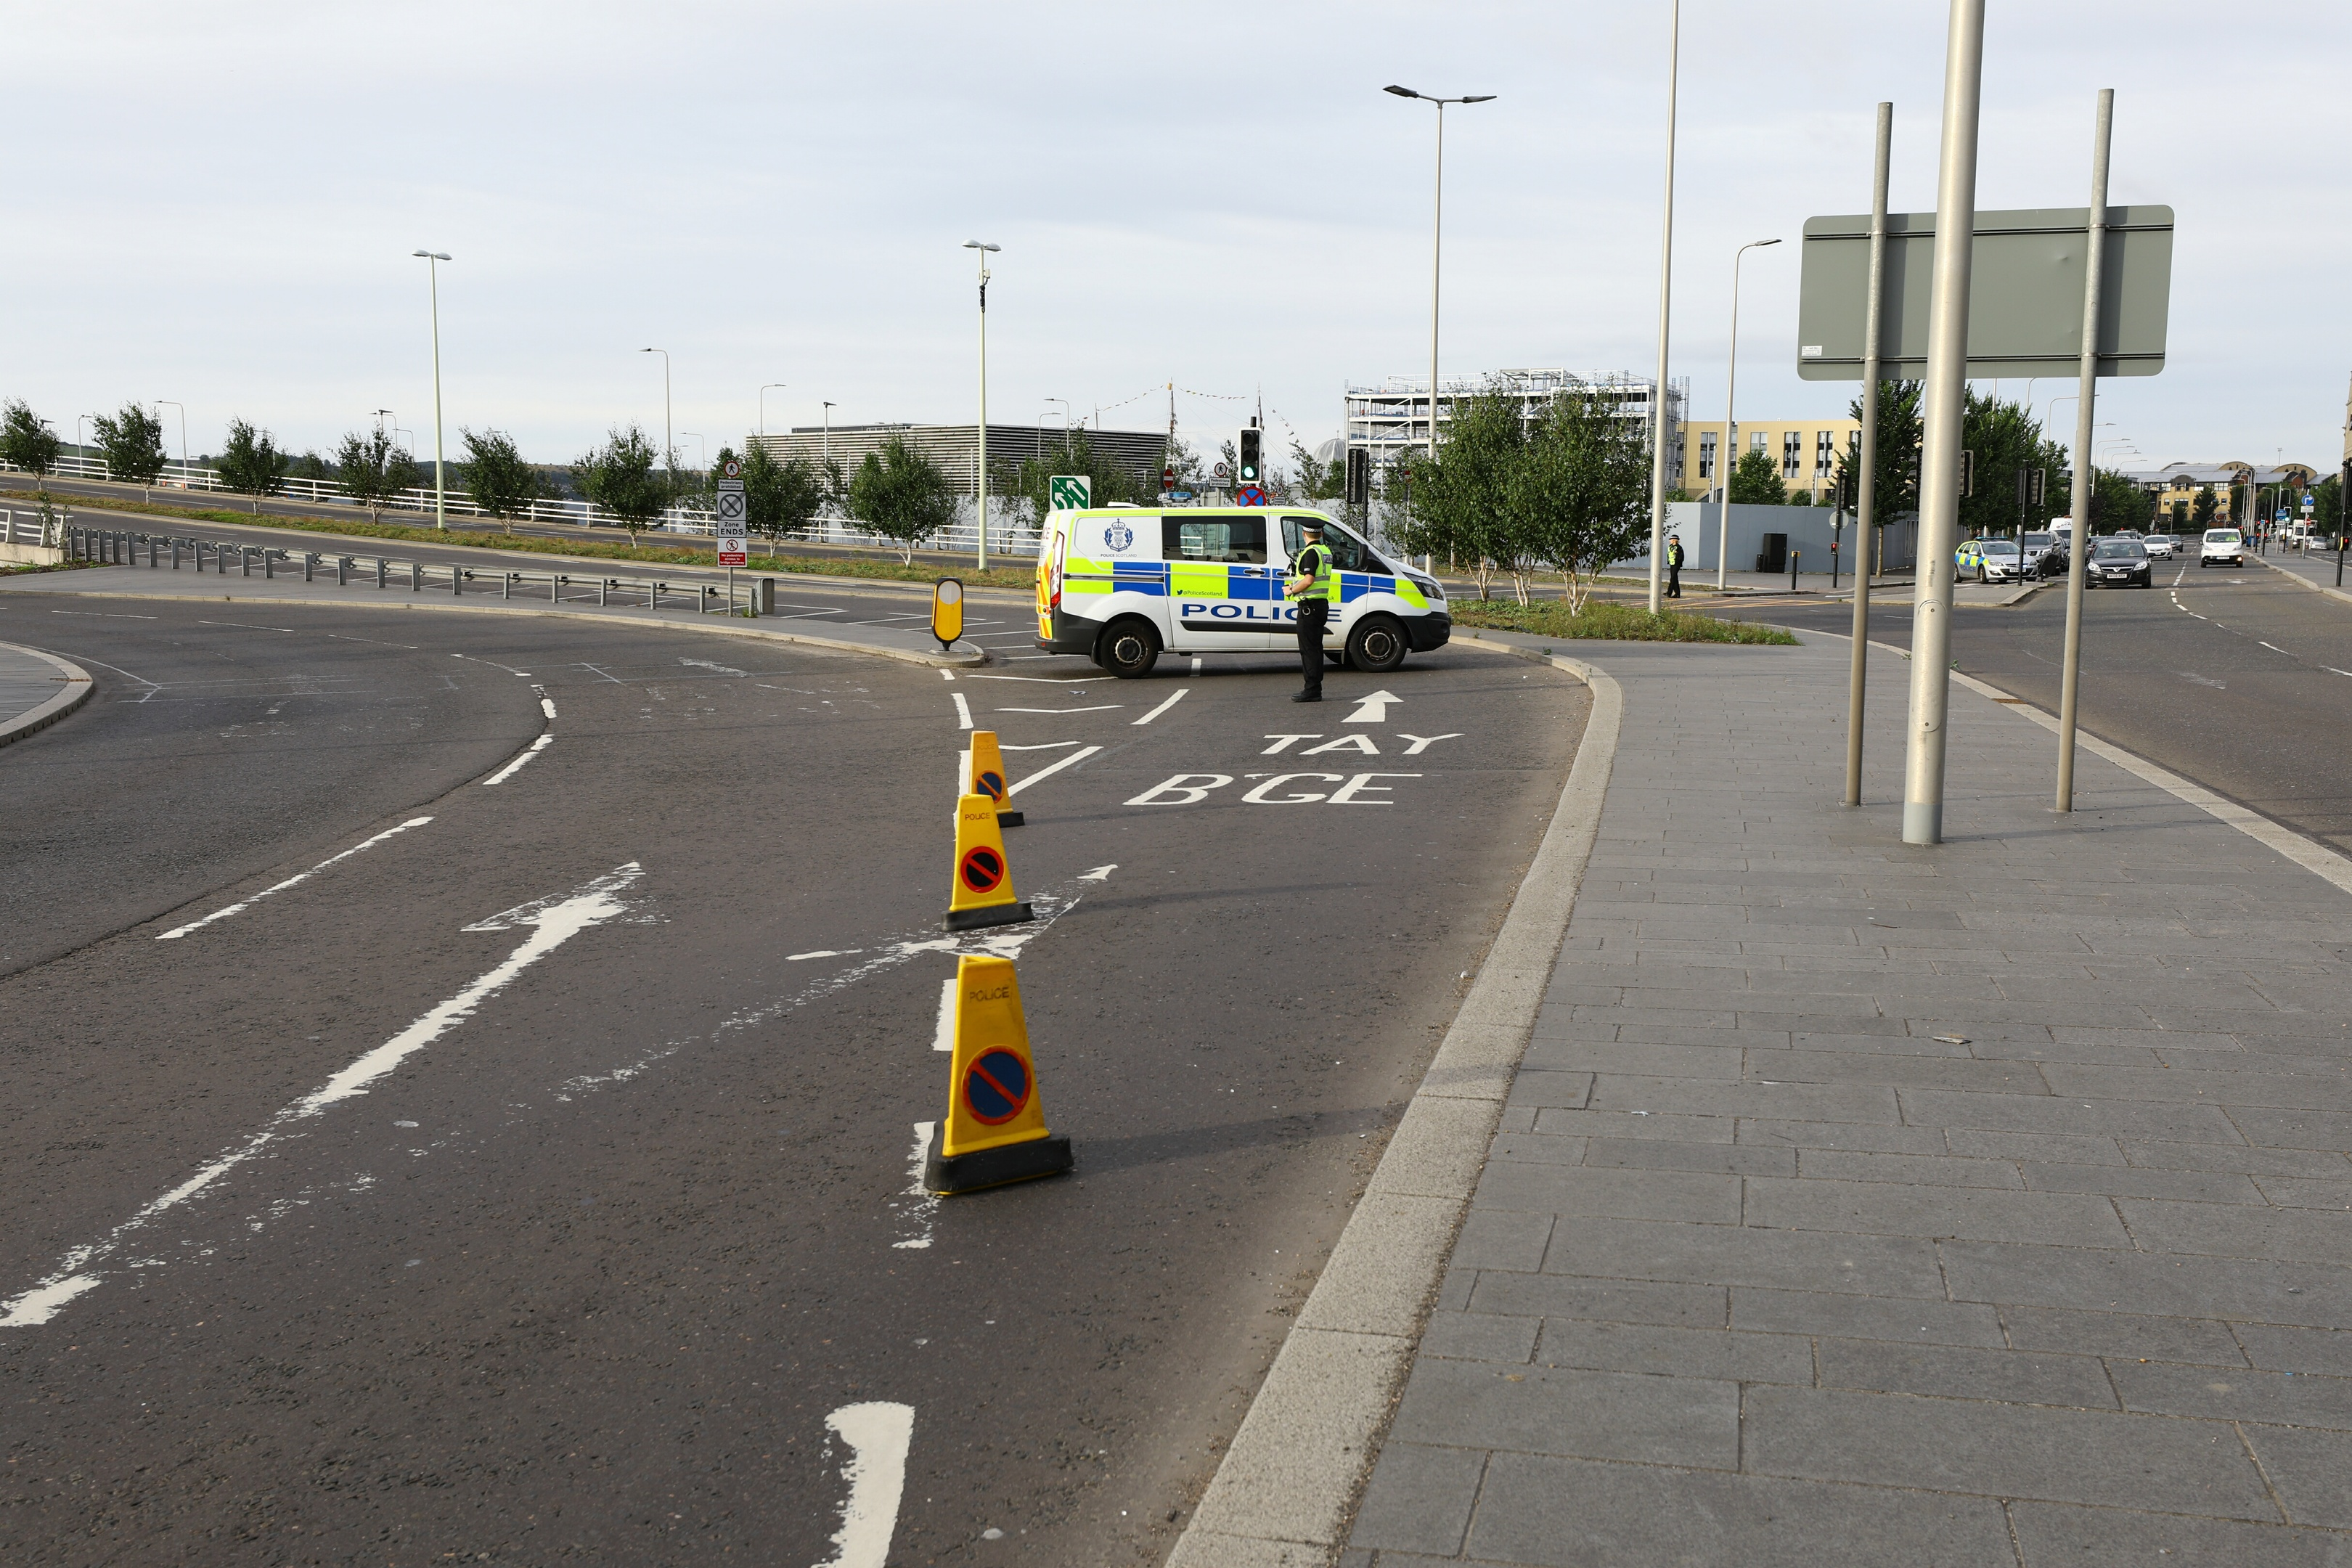 A police officer blocks the entrance ramp to the road bridge during the incident.